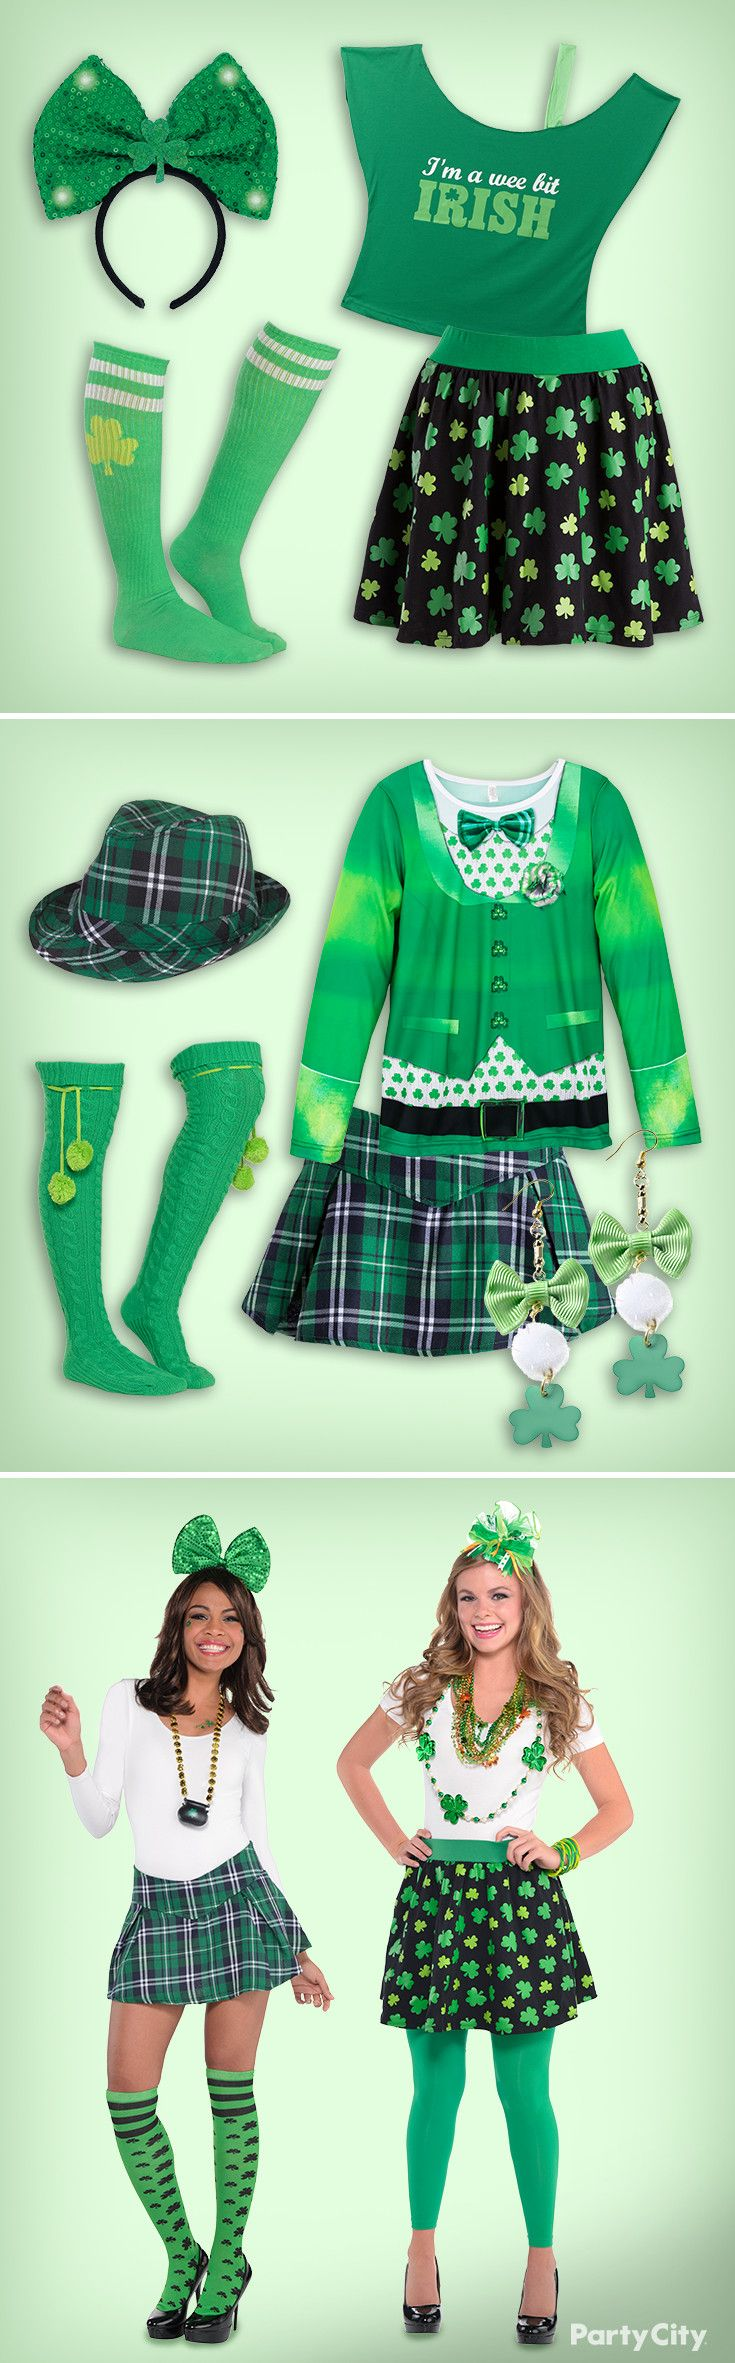 Party City is serious about getting green. Sham-rock the party in festive green looks, from bowties to beads, party hats to plaid. Visit our party ideas page for more St. Patty's Day outfit ideas.